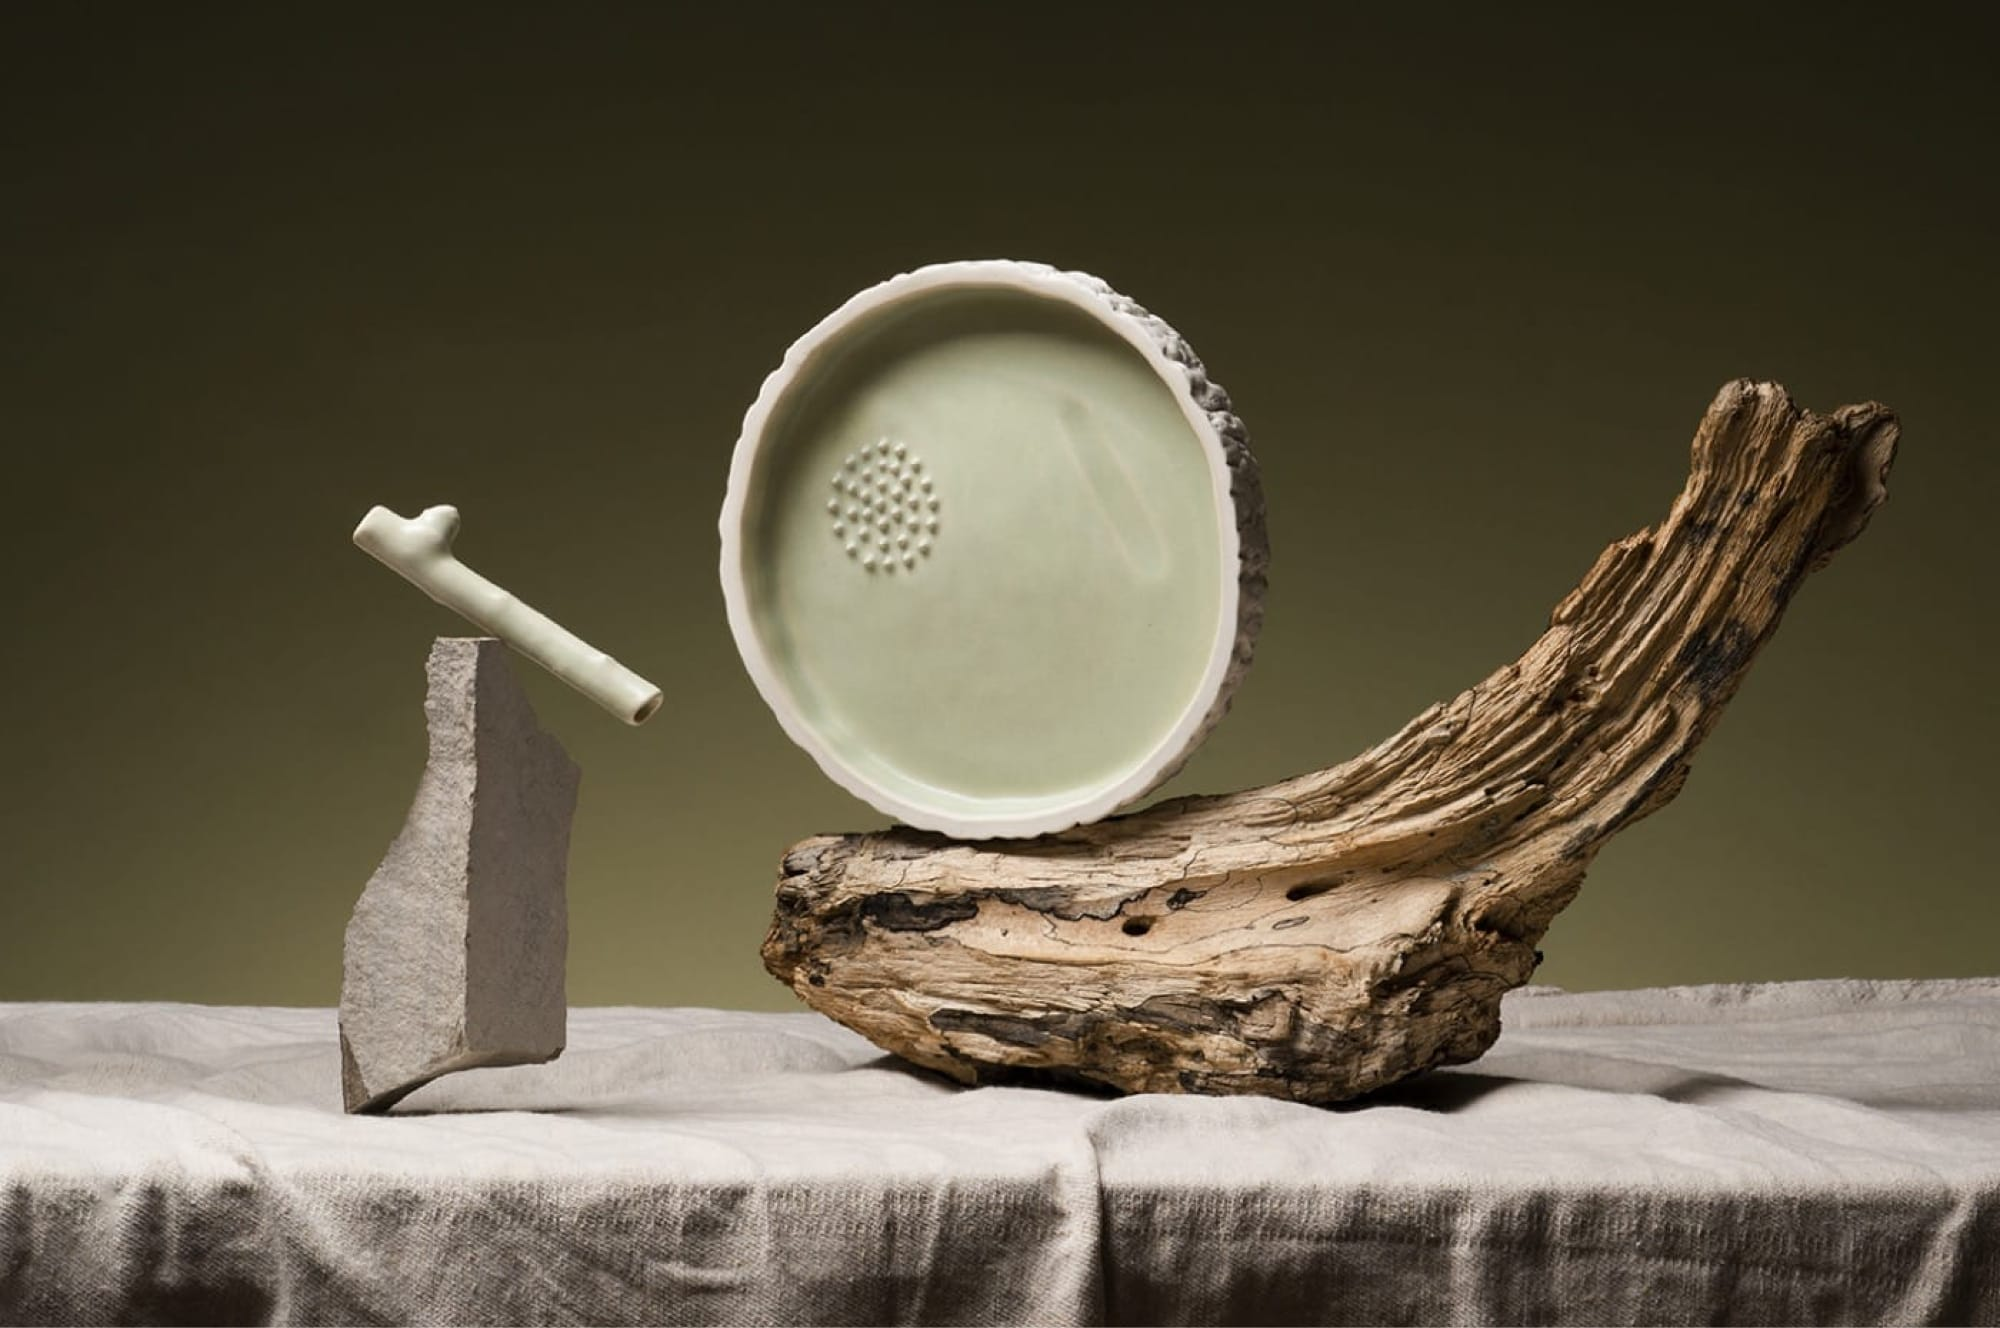 A smoking set inspired by nature